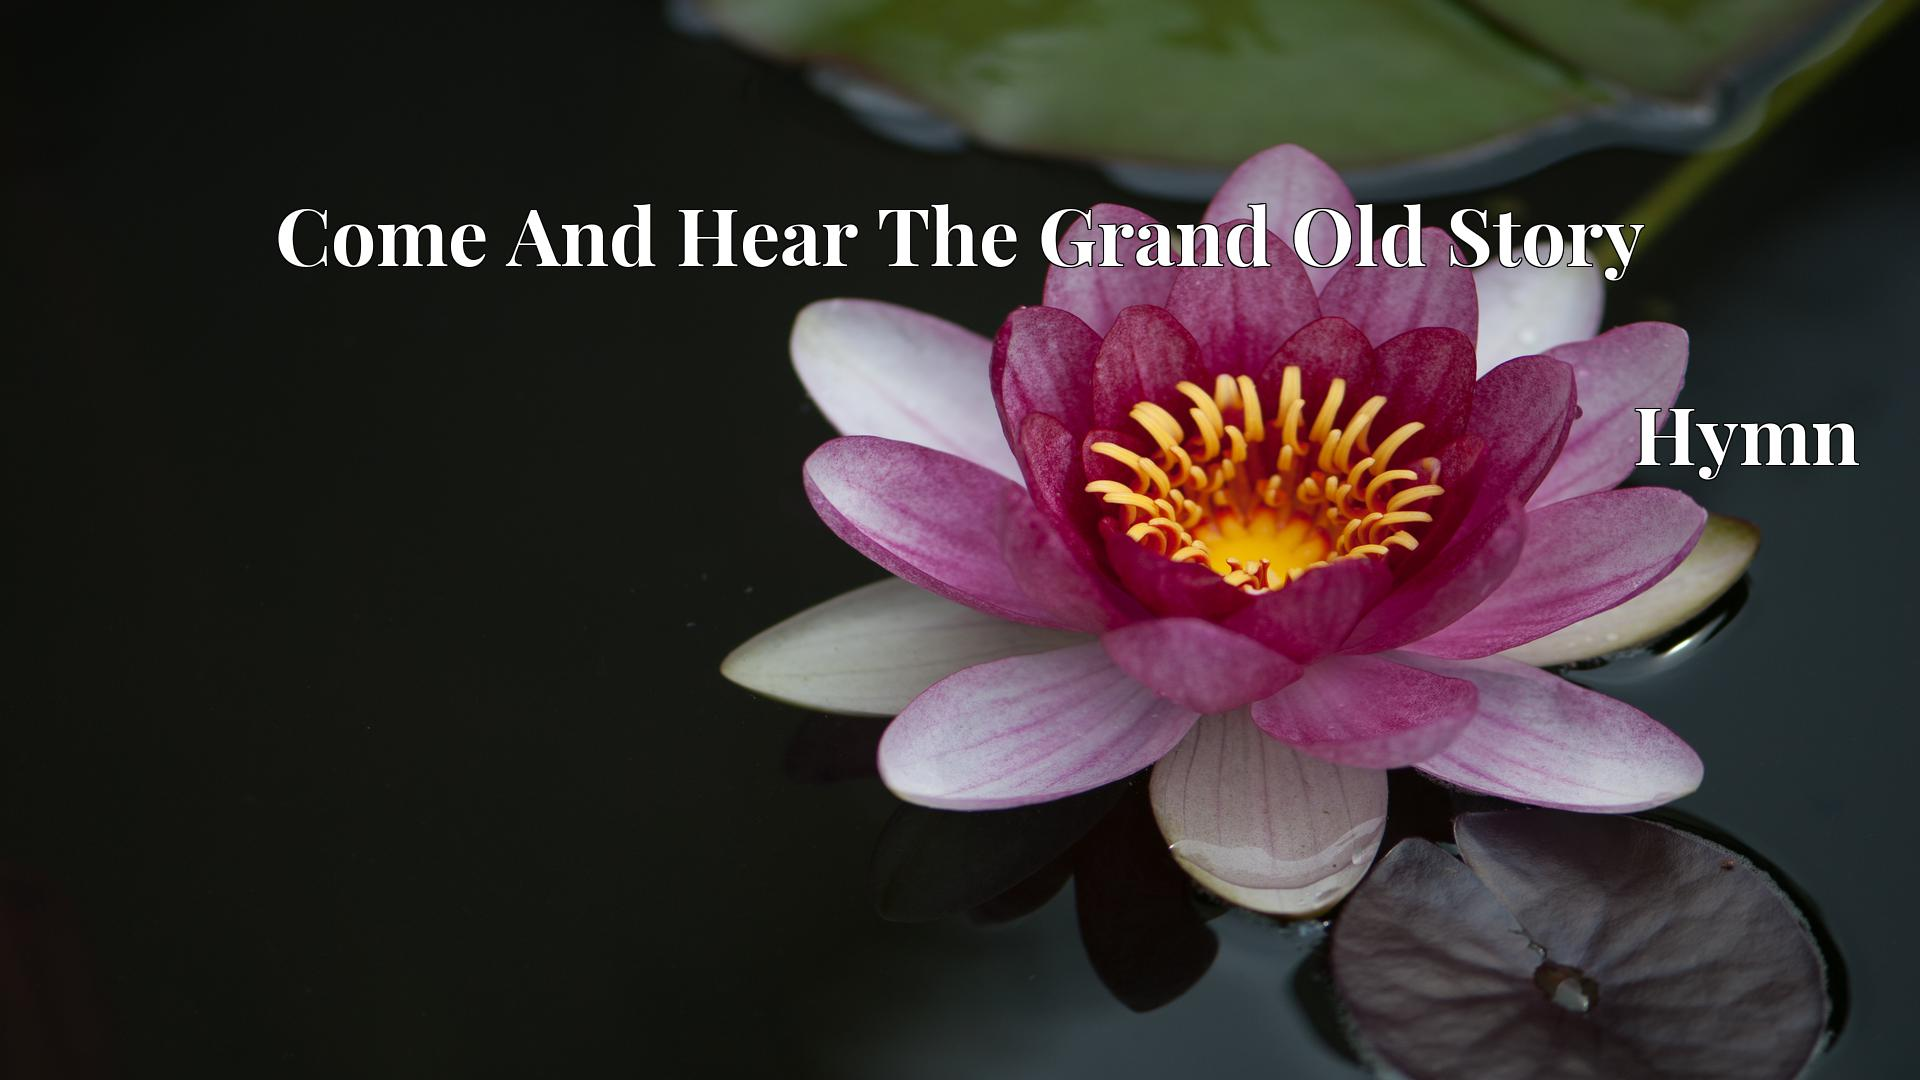 Come And Hear The Grand Old Story - Hymn